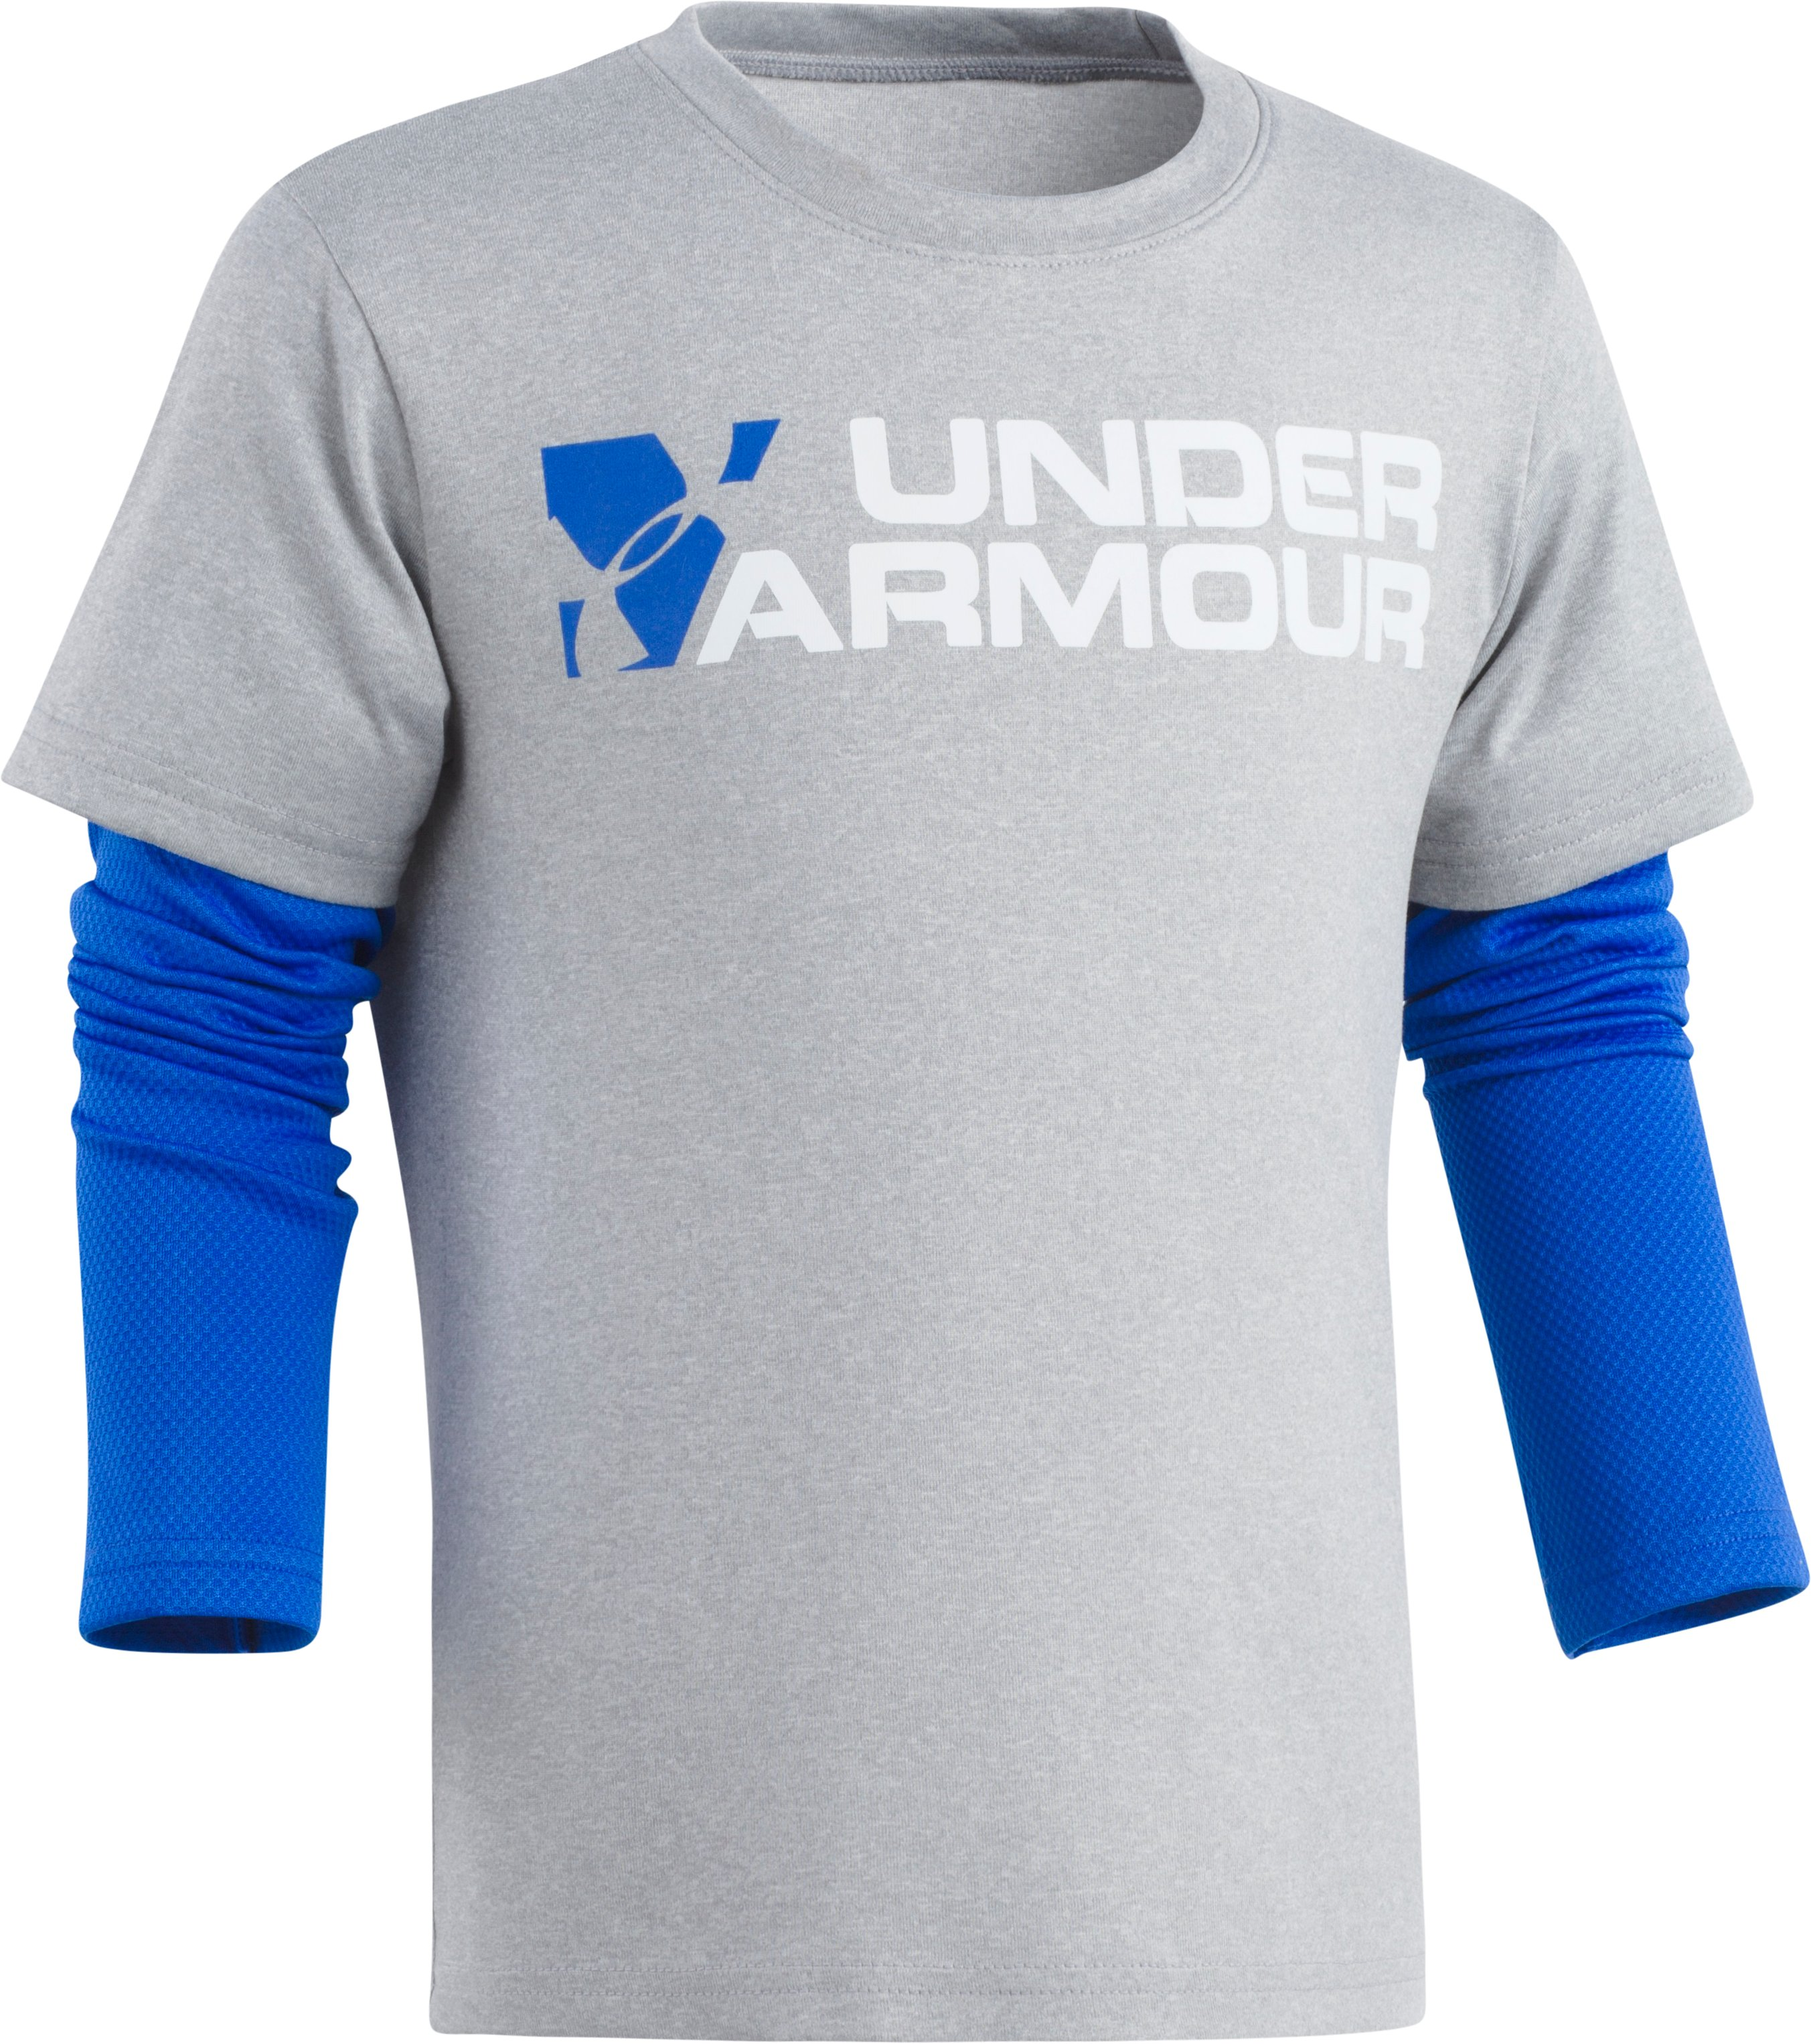 Under Armour Slider 4-7, True Gray Heather, zoomed image